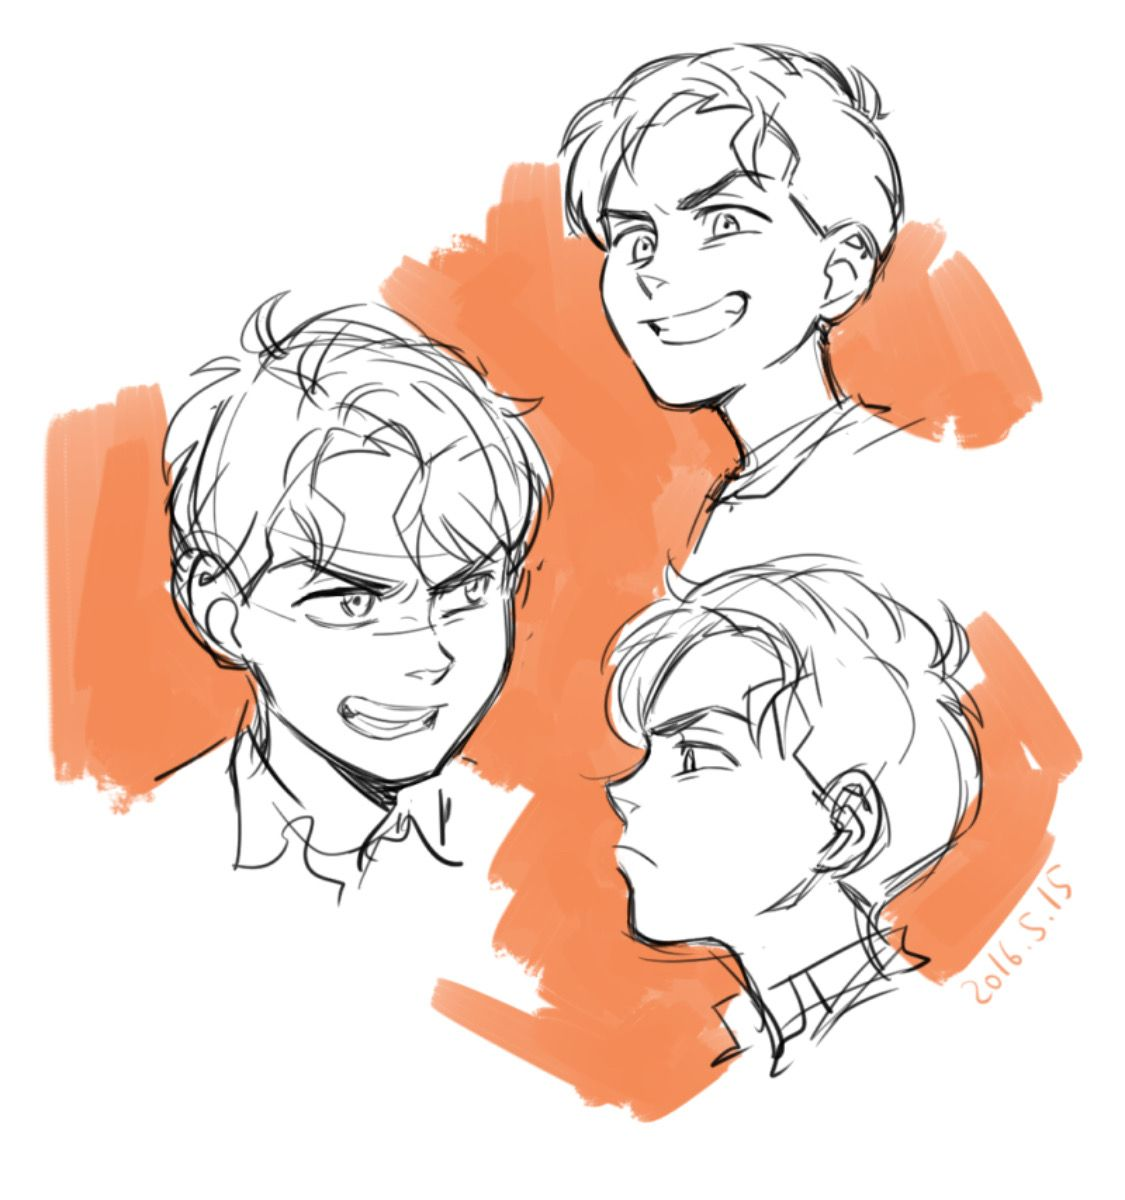 Pin By Roblox Noob On Billy Batson Art Sketches Character Art Drawing Expressions